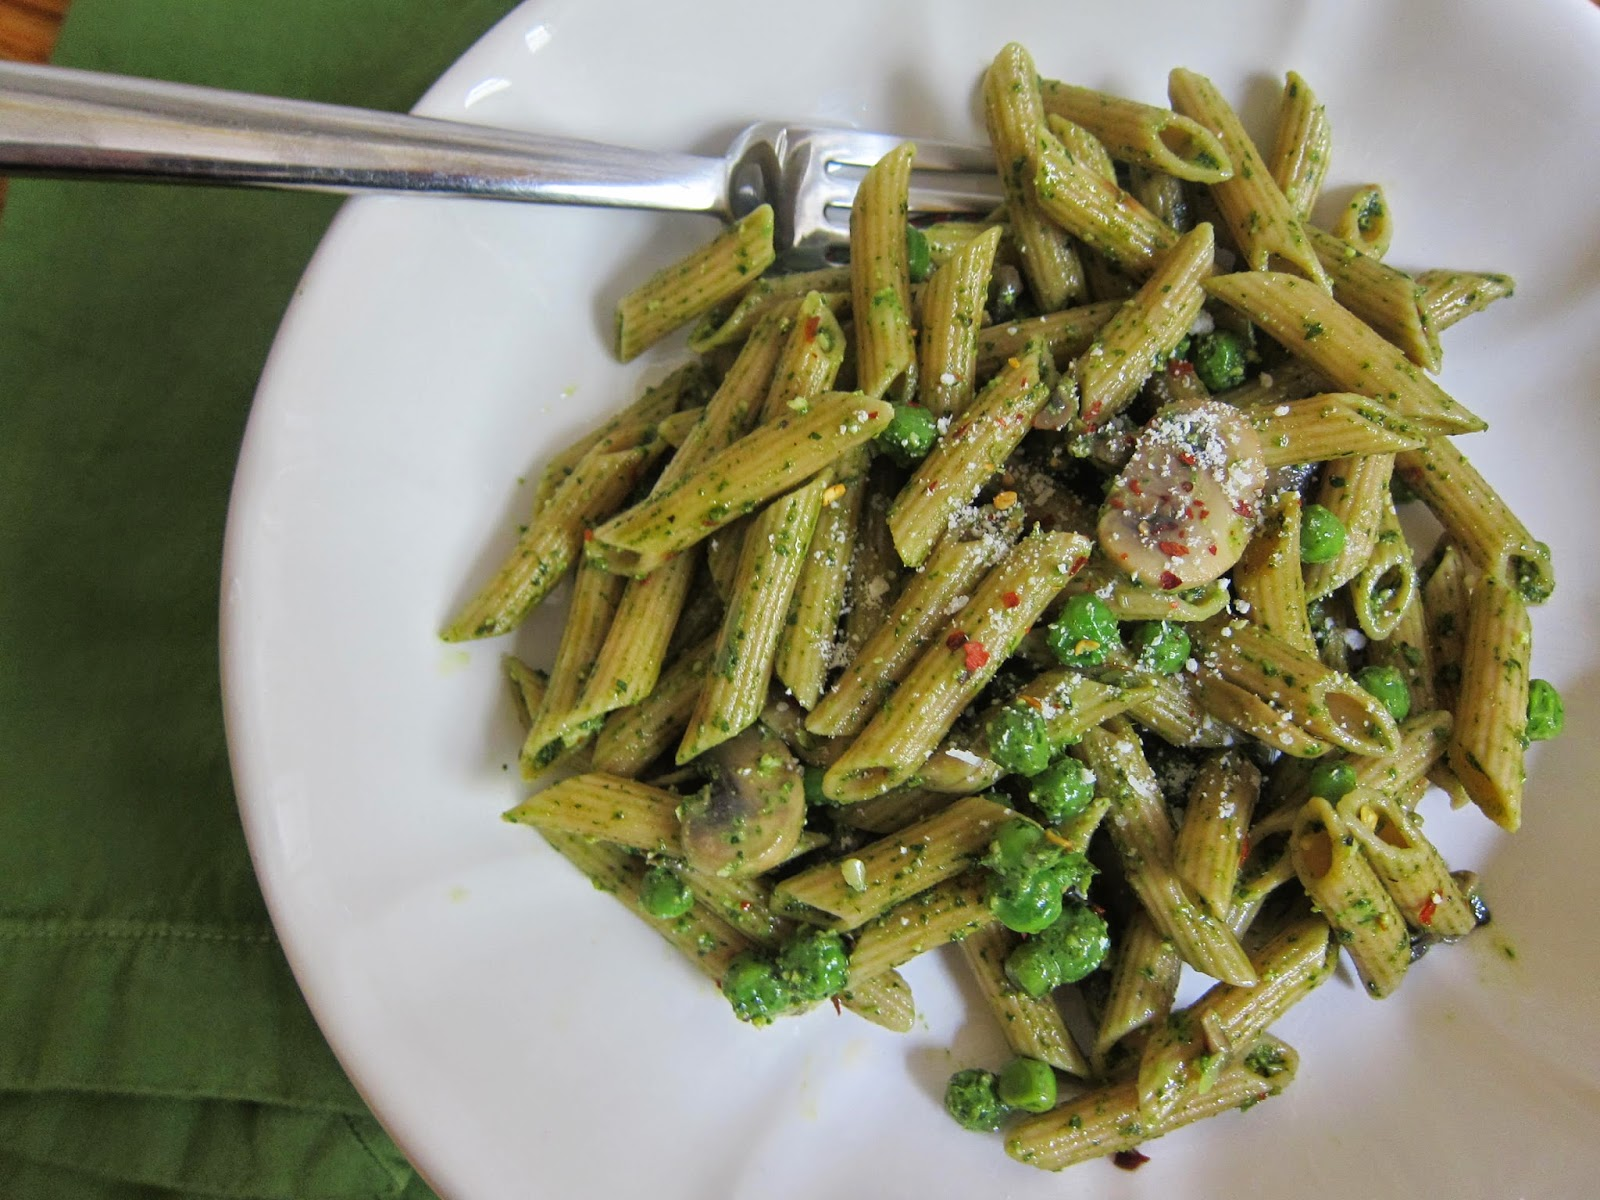 Spring Pasta with Peas, Mushrooms, and Parsley-Arugula Pesto | The Economical Eater